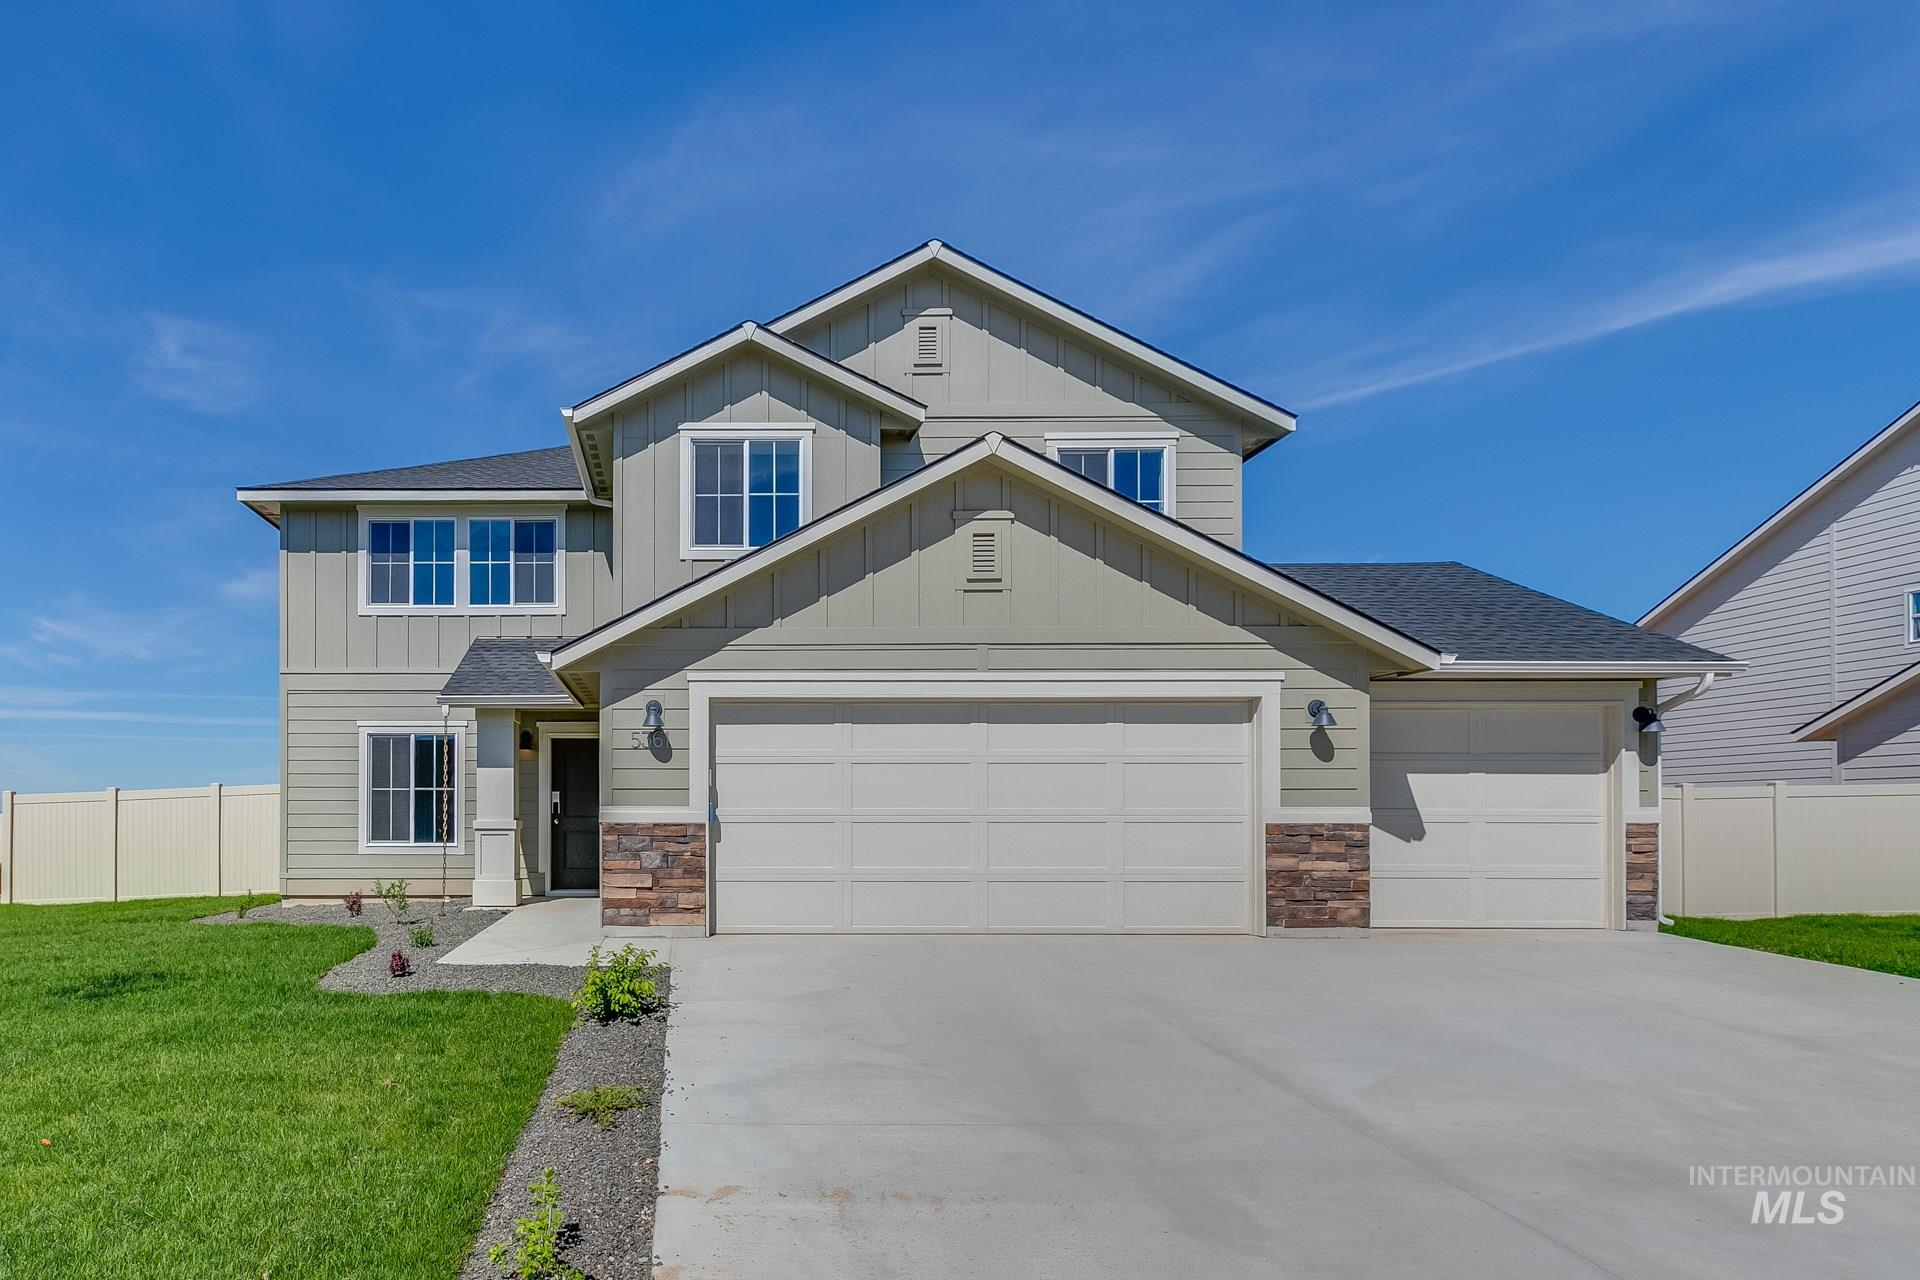 5361 N Willowside Ave, Meridian, Idaho 83646, 4 Bedrooms, 2.5 Bathrooms, Residential For Sale, Price $390,567, 98755056